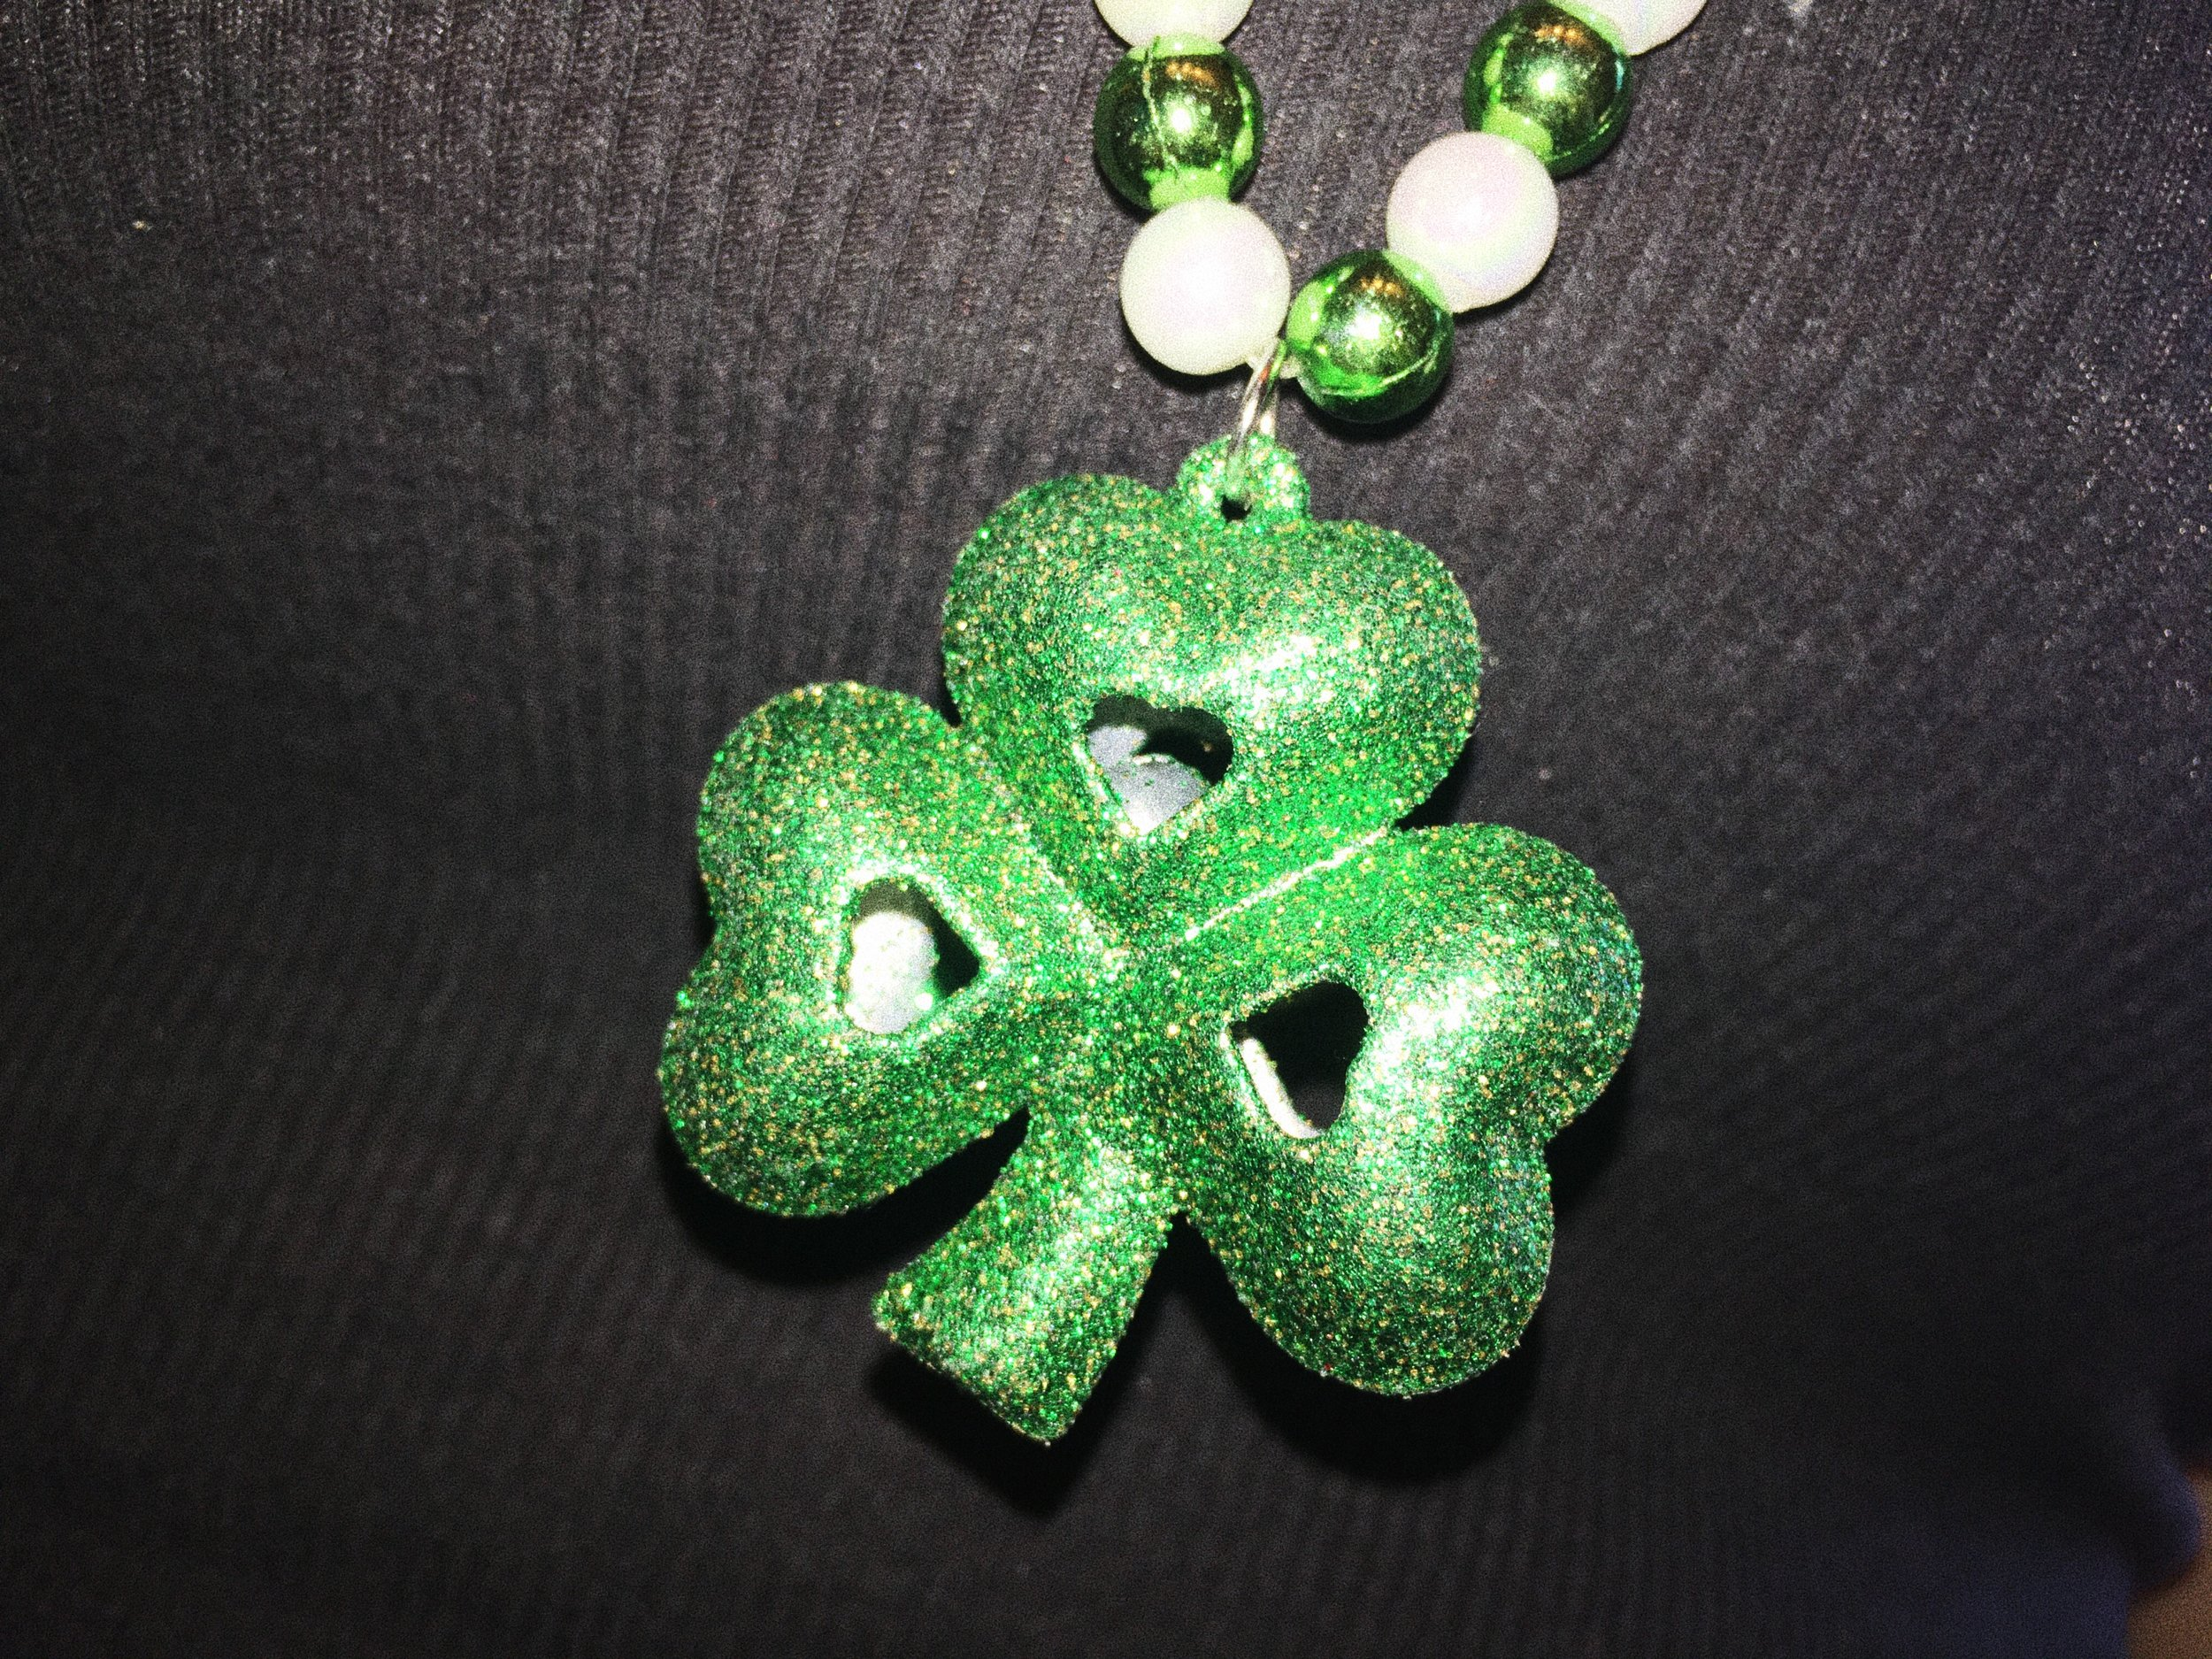 I love this cute little lucky charm necklace of mine!